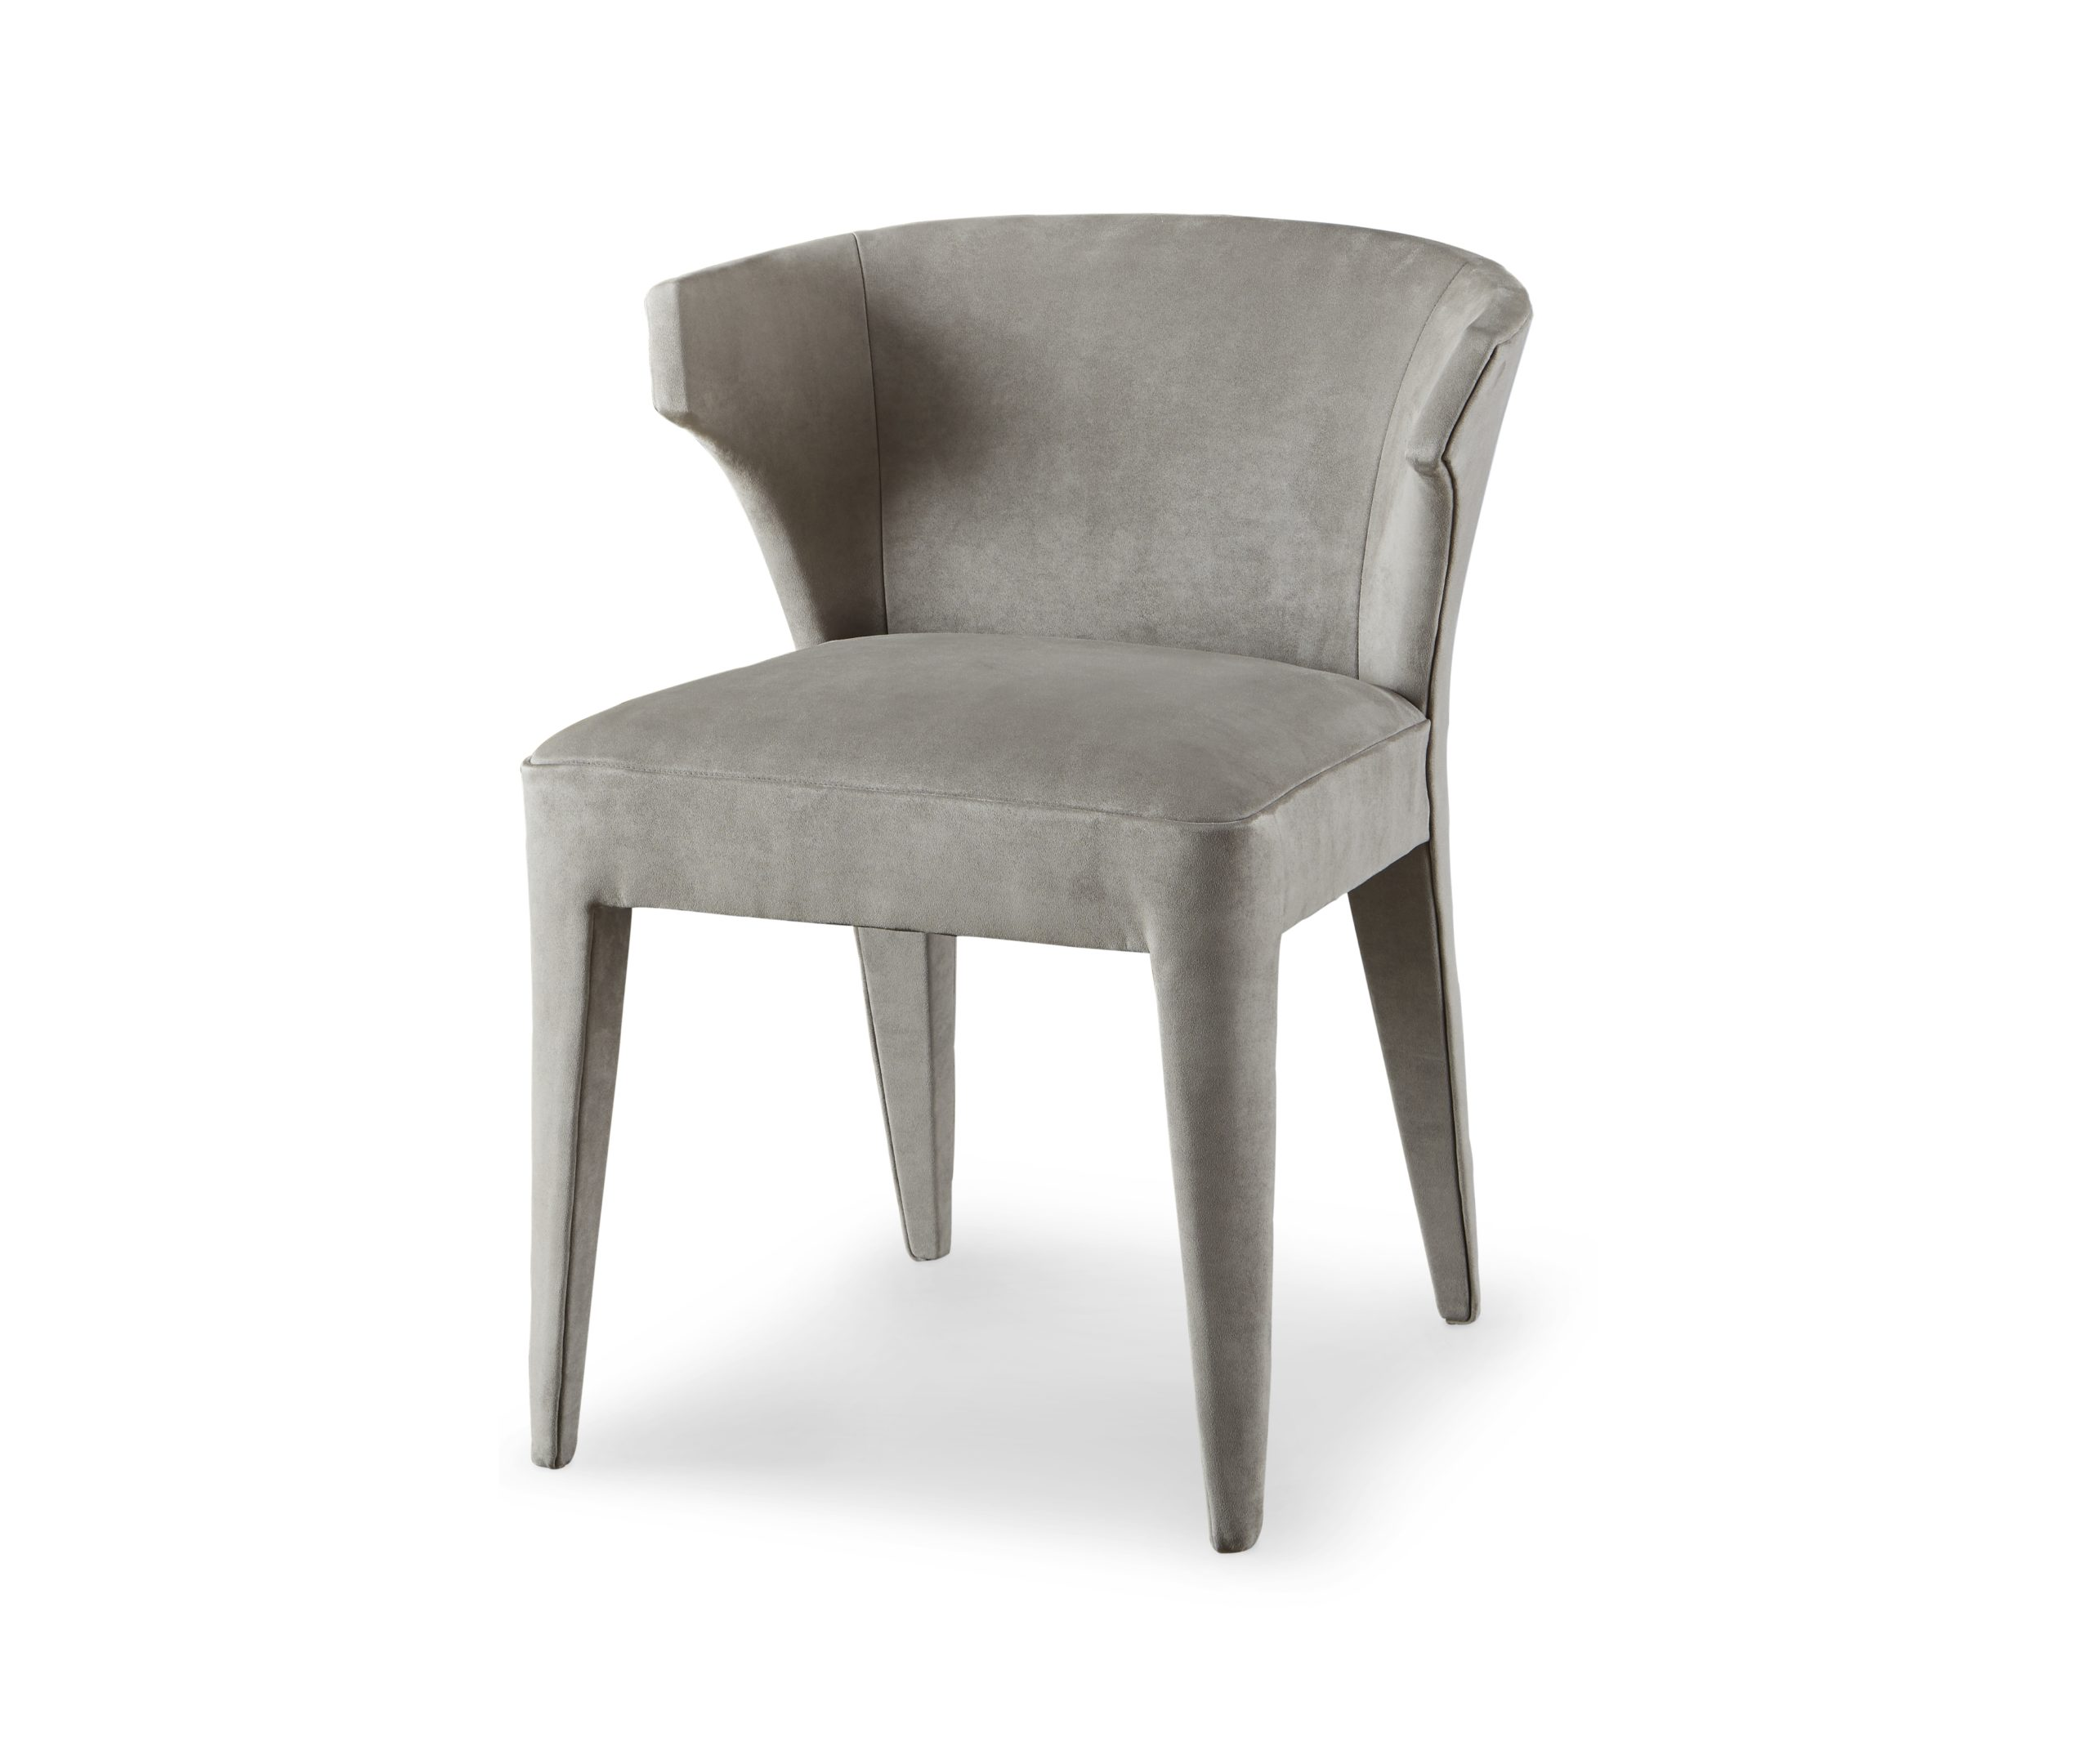 Baker_products_WNWN_lapel_chair_BAA3040_FRONT_3QRT-scaled-2